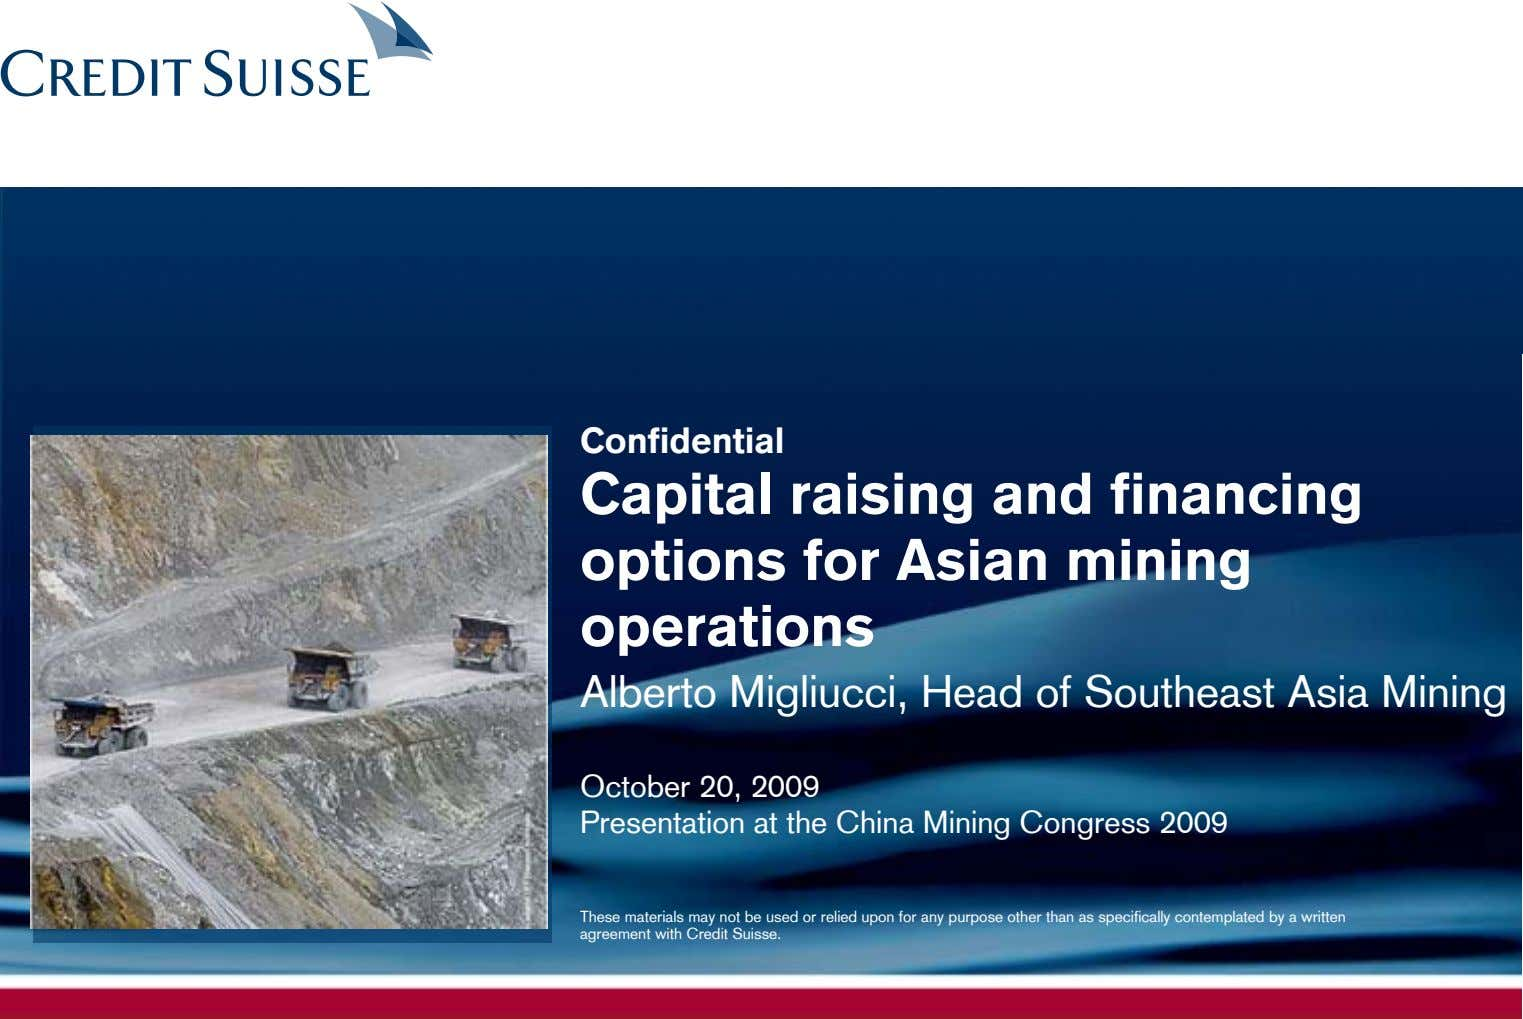 Confidential Capital raising and financing options for Asian mining operations Alberto Migliucci, Head of Southeast